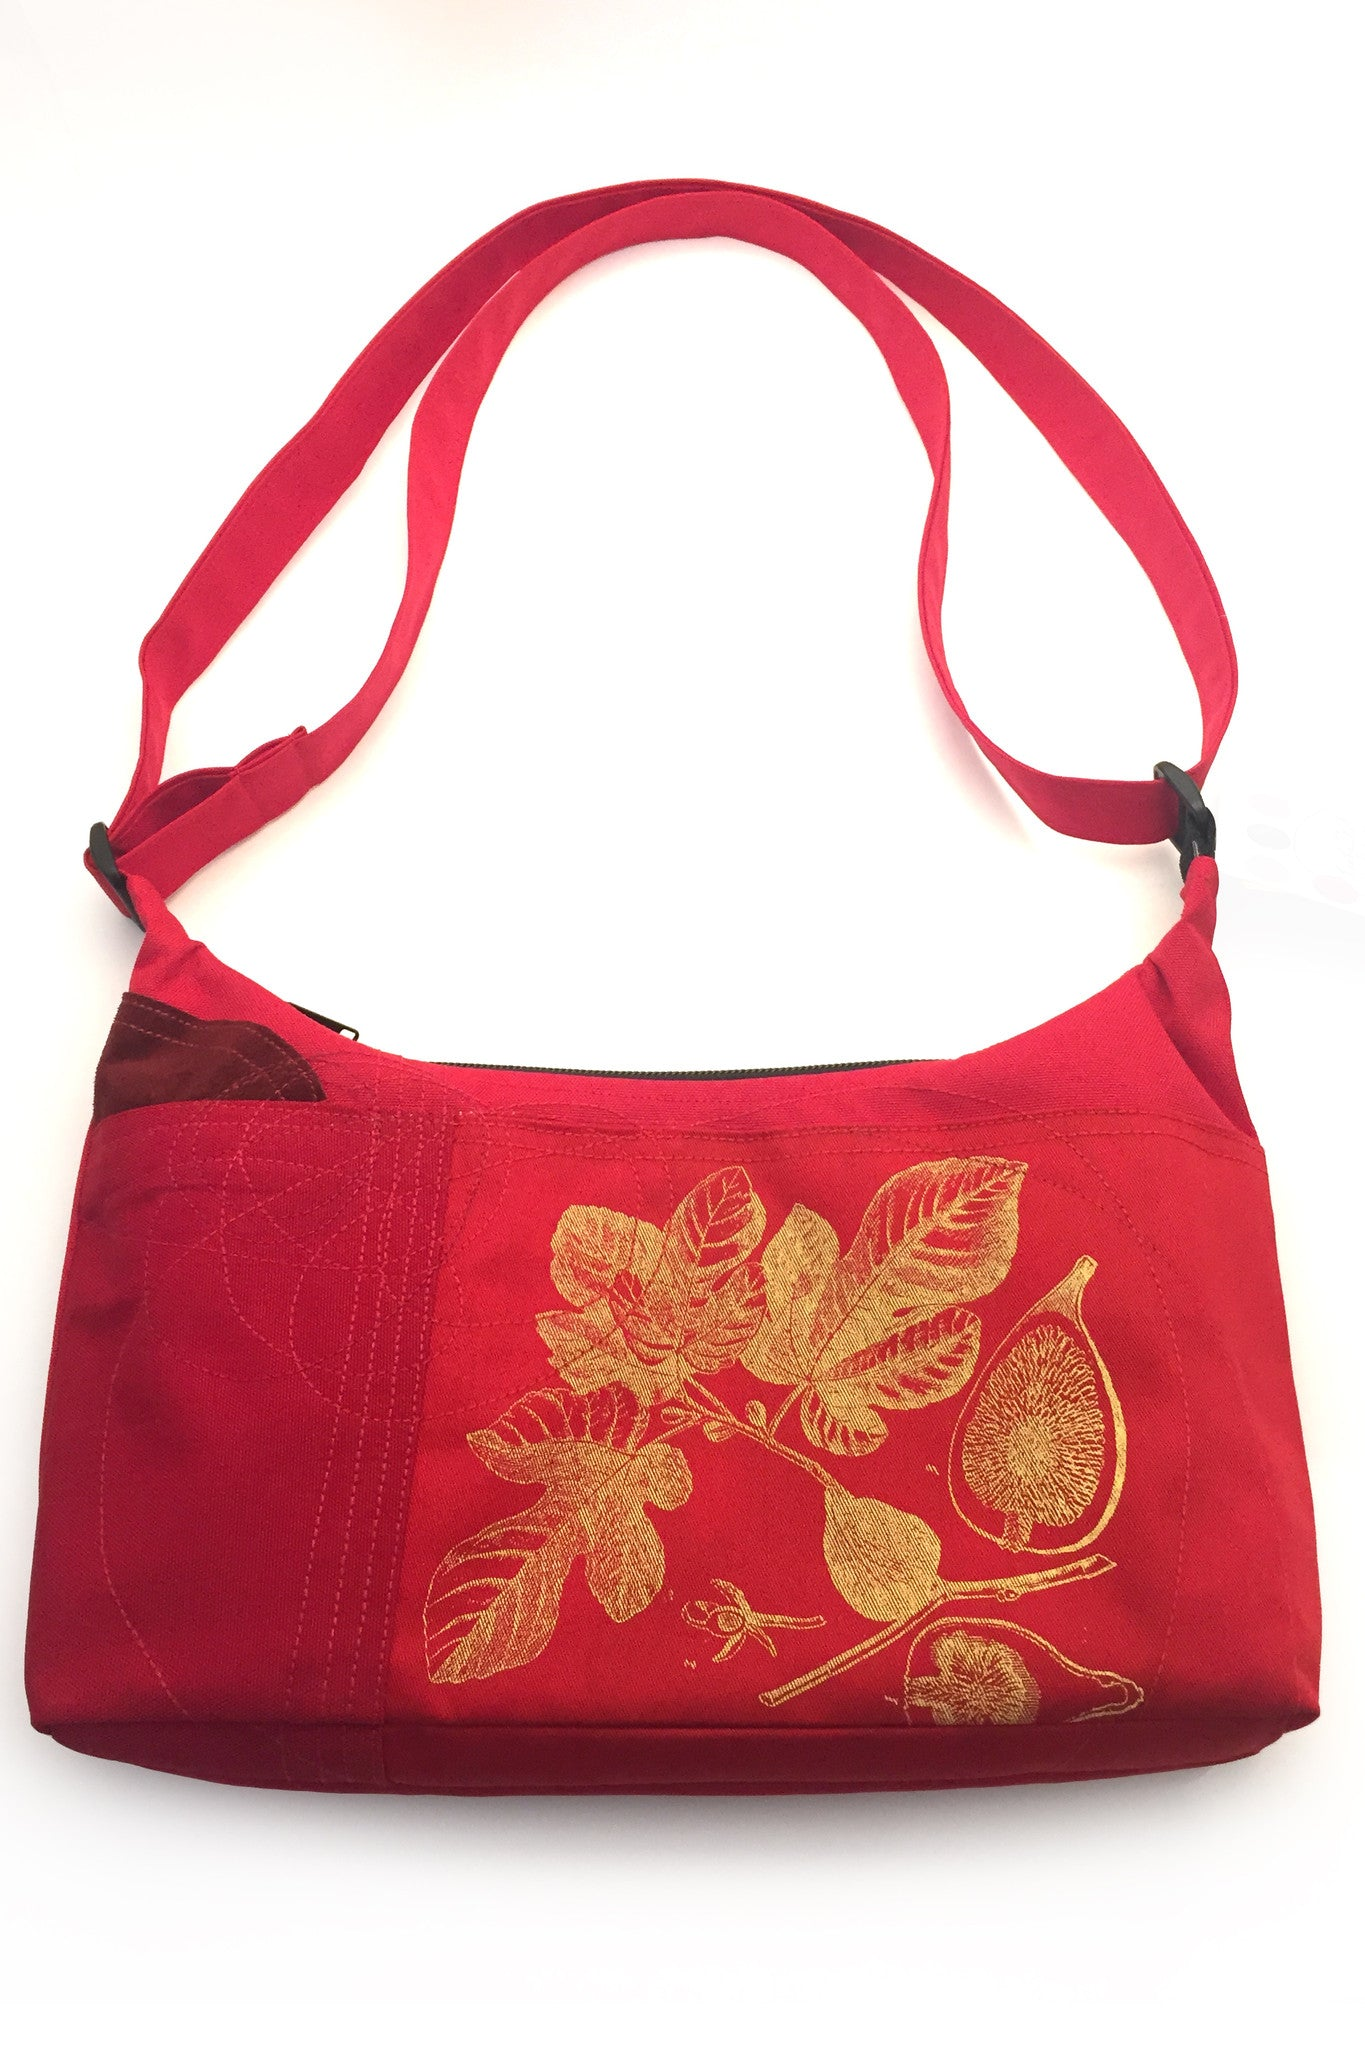 Cynthia DM One of a Kind Water Resistant Small Bag - Red Figs and Leaves  Handmade in Quebec